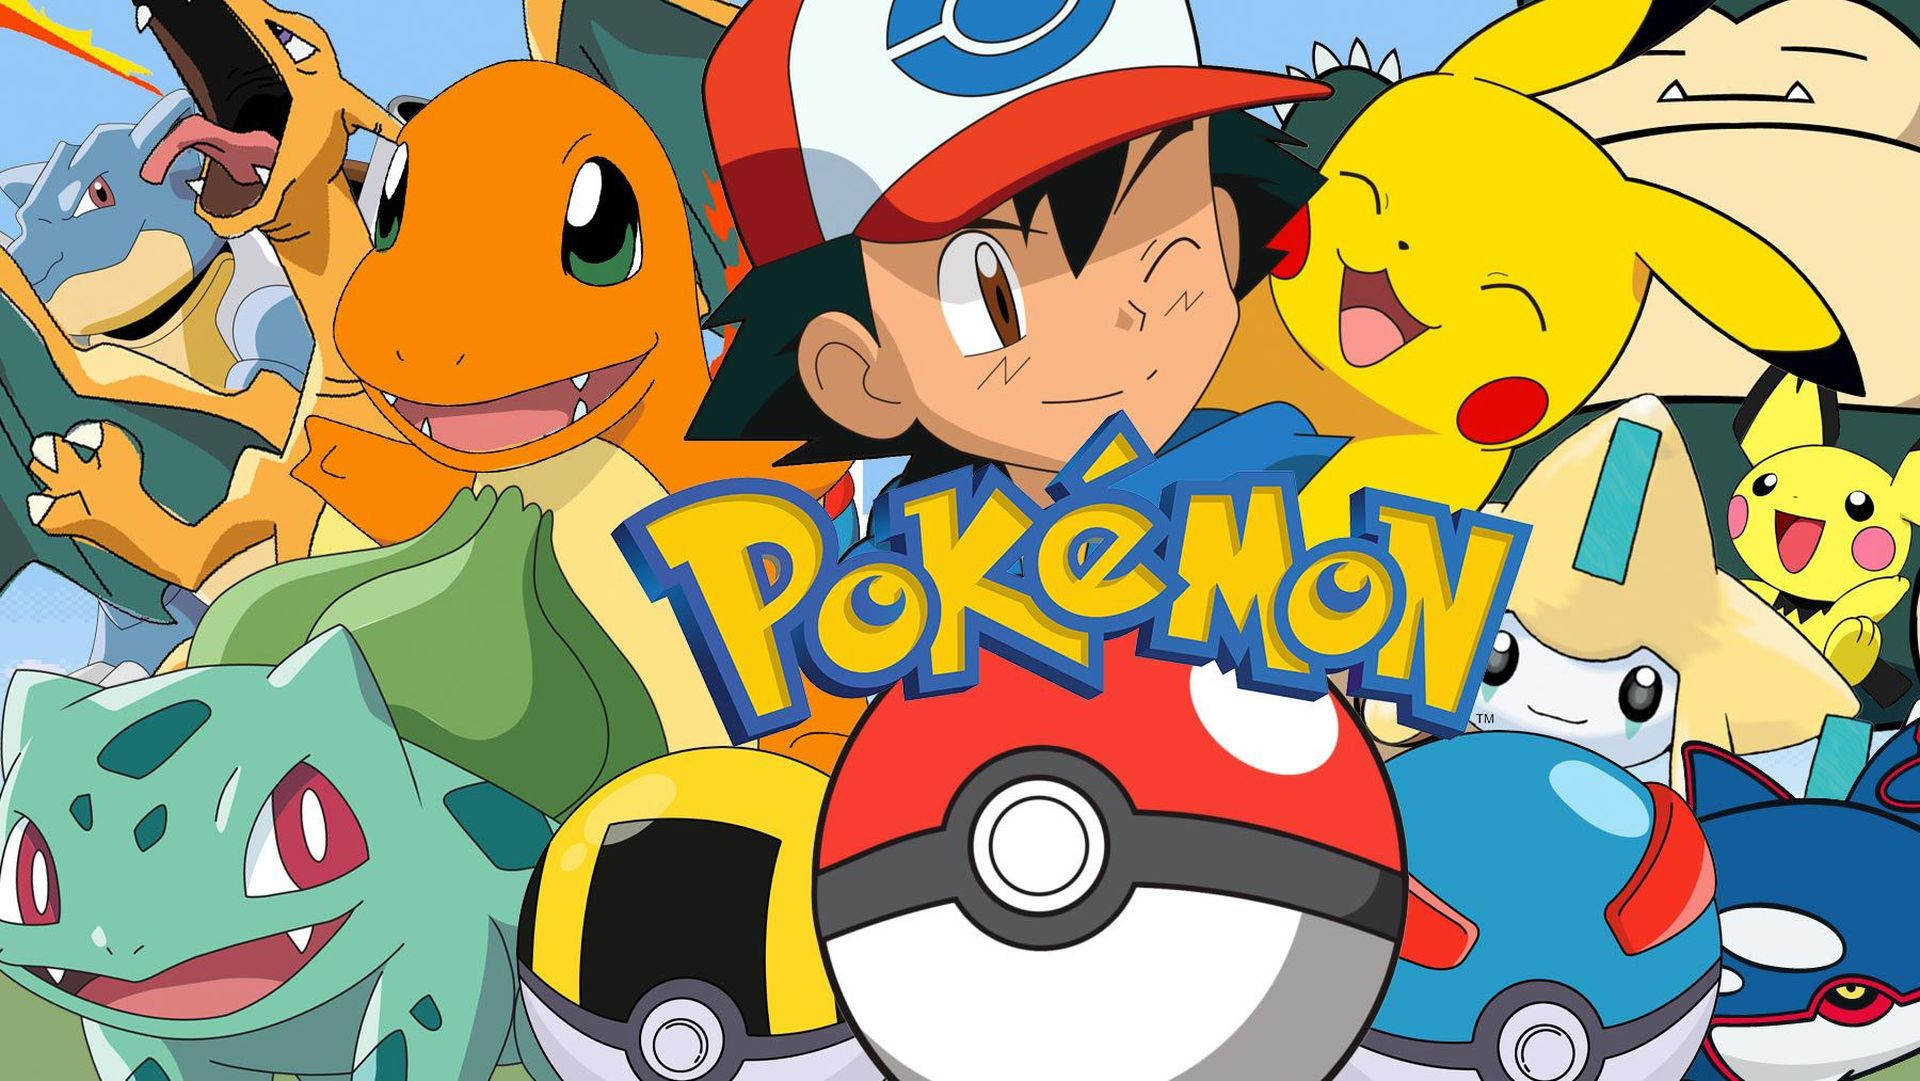 Once an enemy Pokémon faints, all of the player's Pokémon involved in the battle receive a certain amount of experience points (EXP).